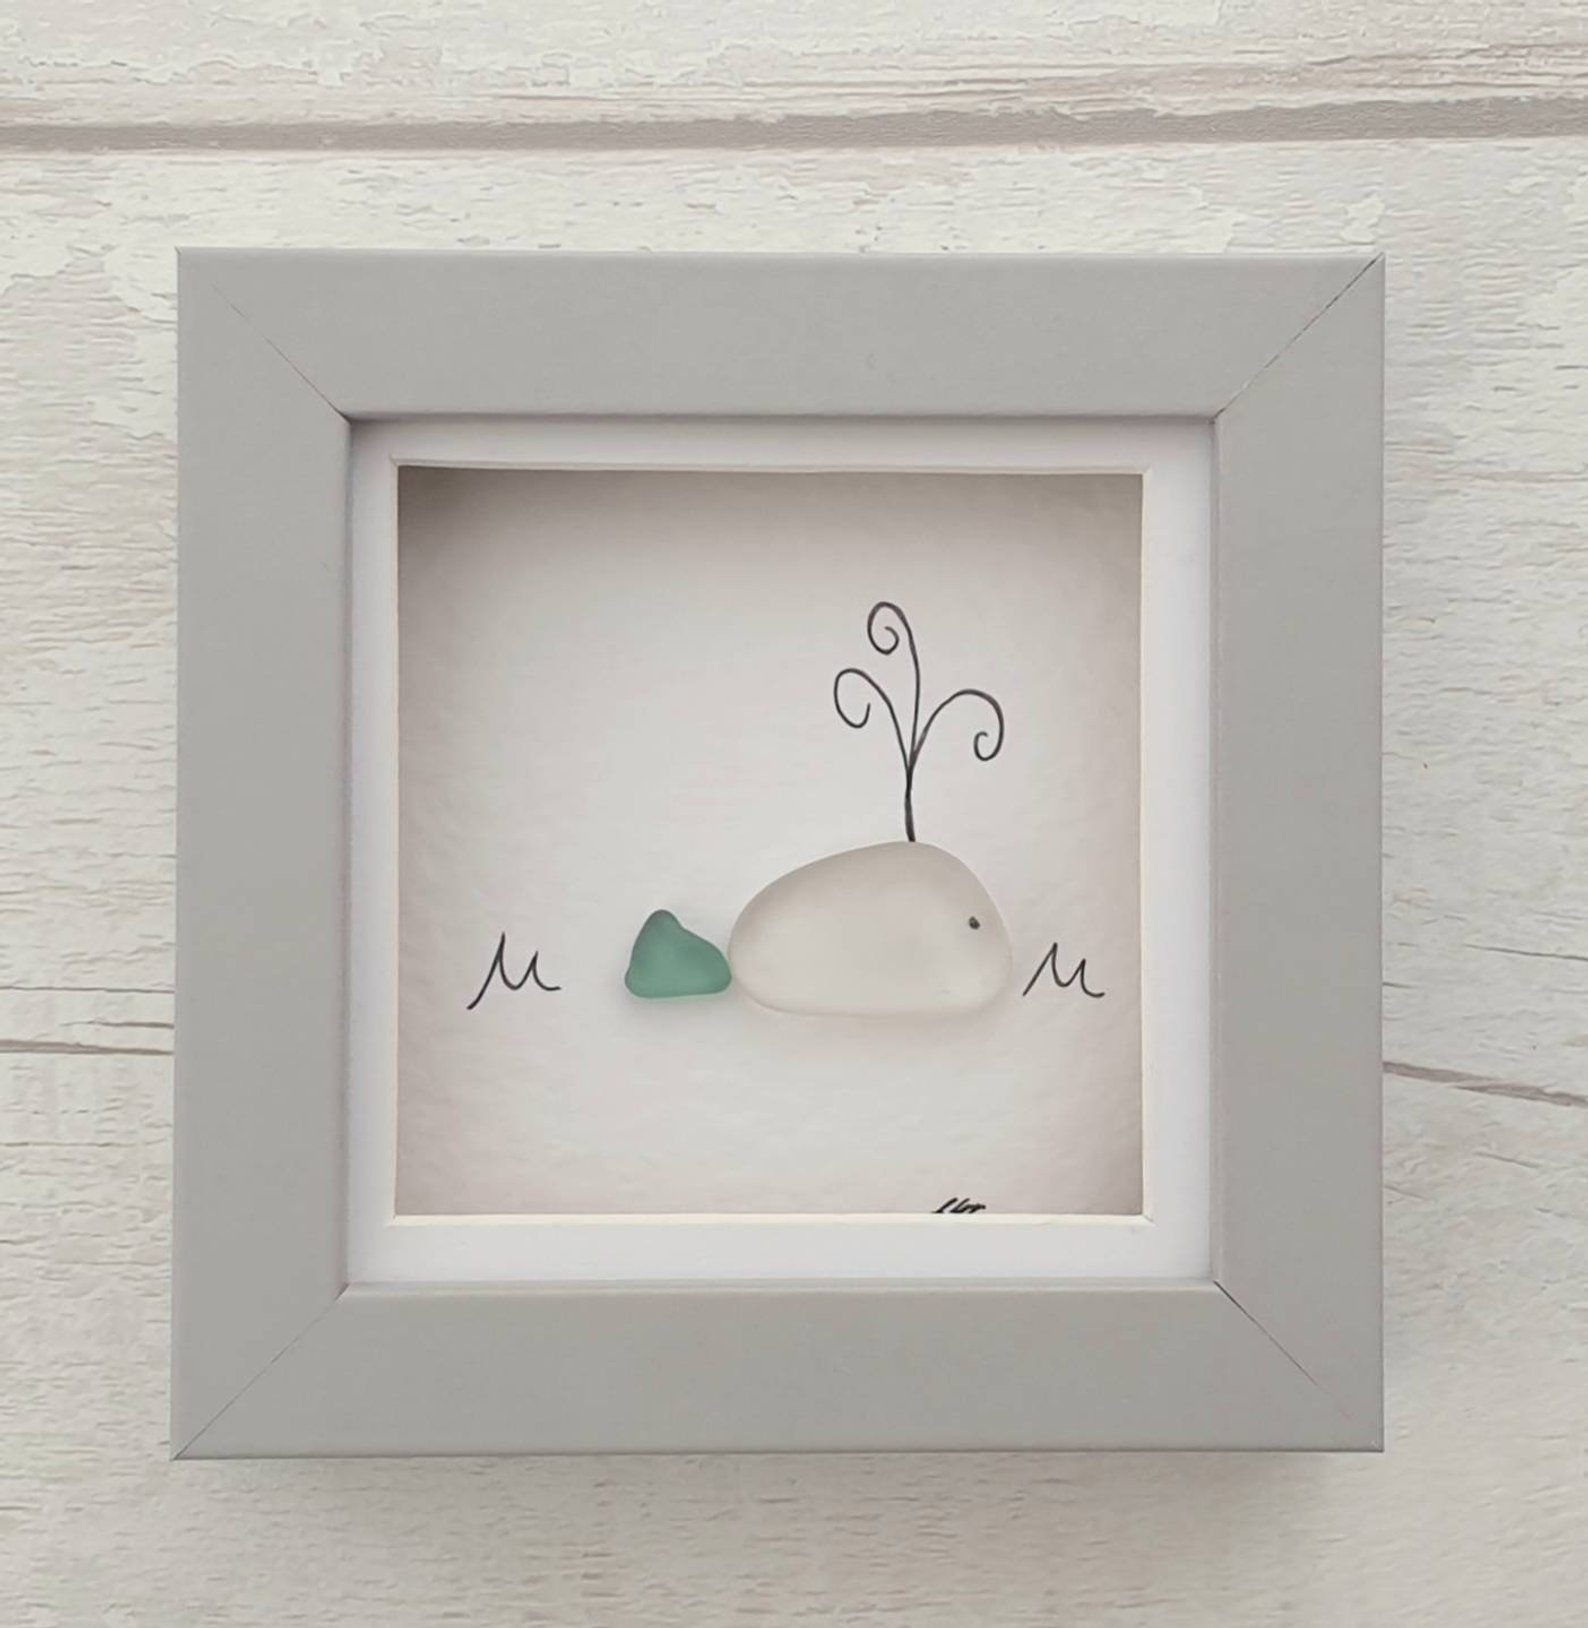 Sea glass art whale pebble art, unique nursery decor